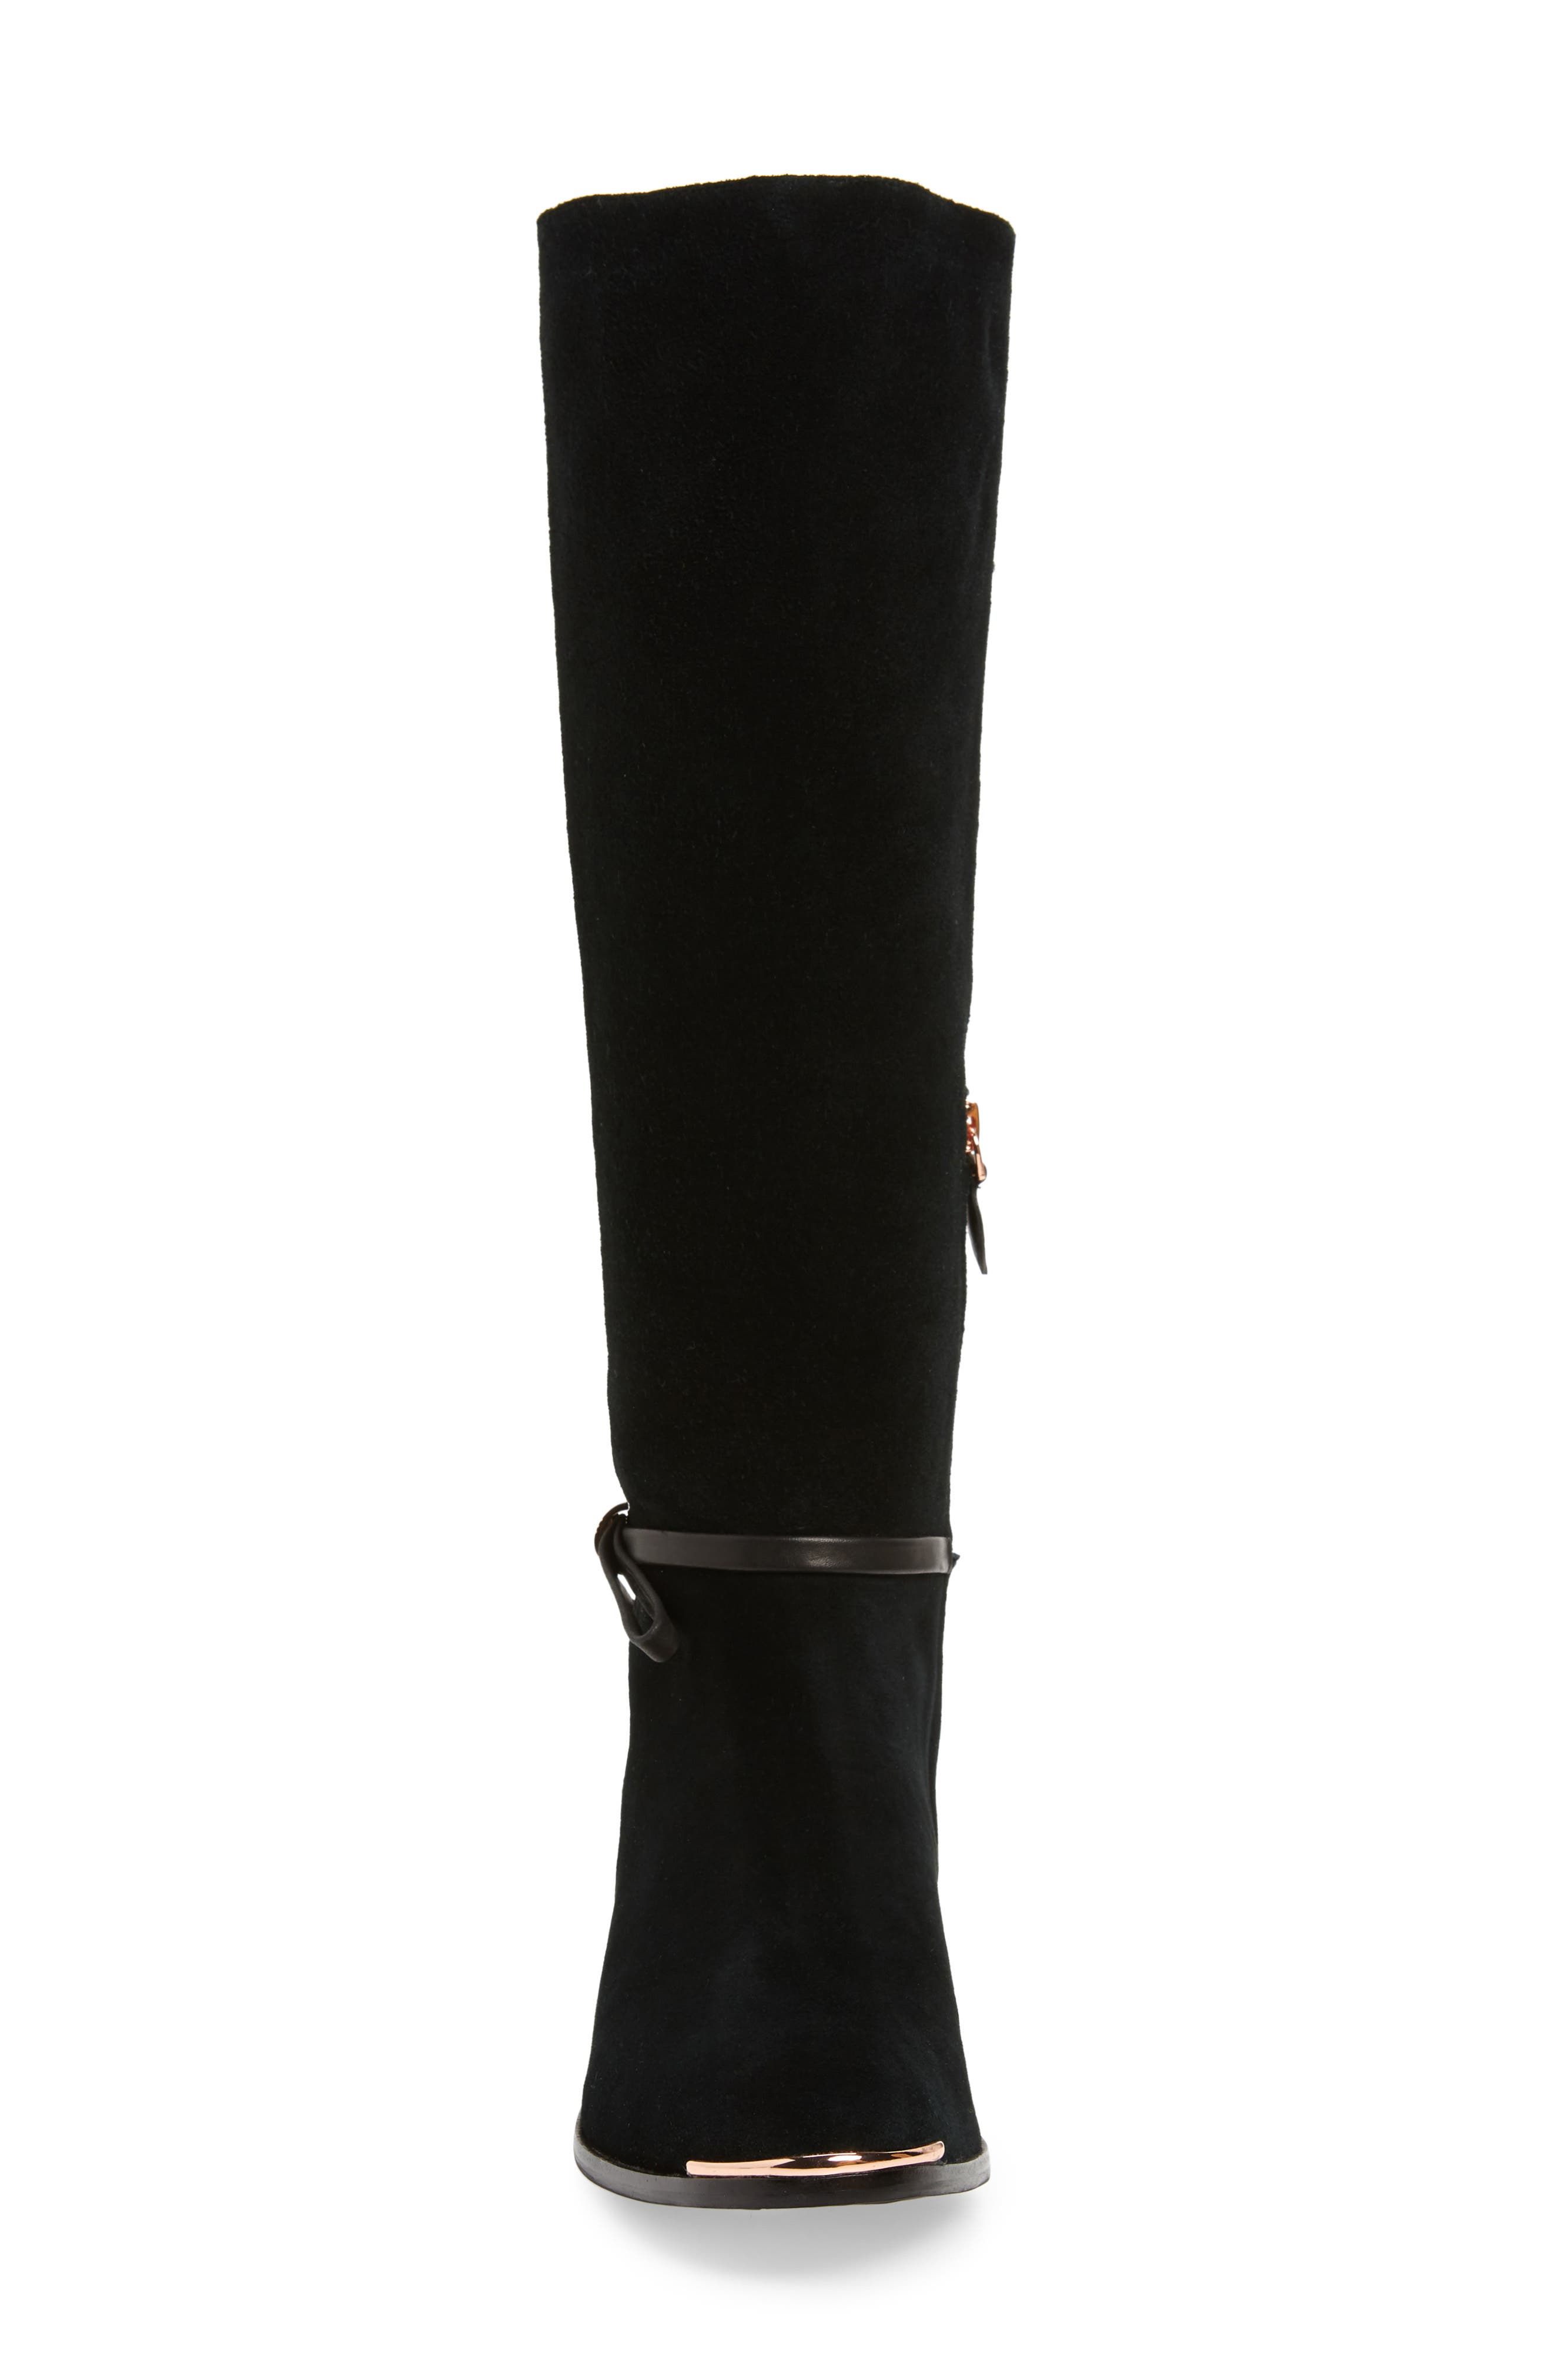 TED BAKER LONDON, Lykla Knee High Boot, Alternate thumbnail 4, color, BLACK SUEDE